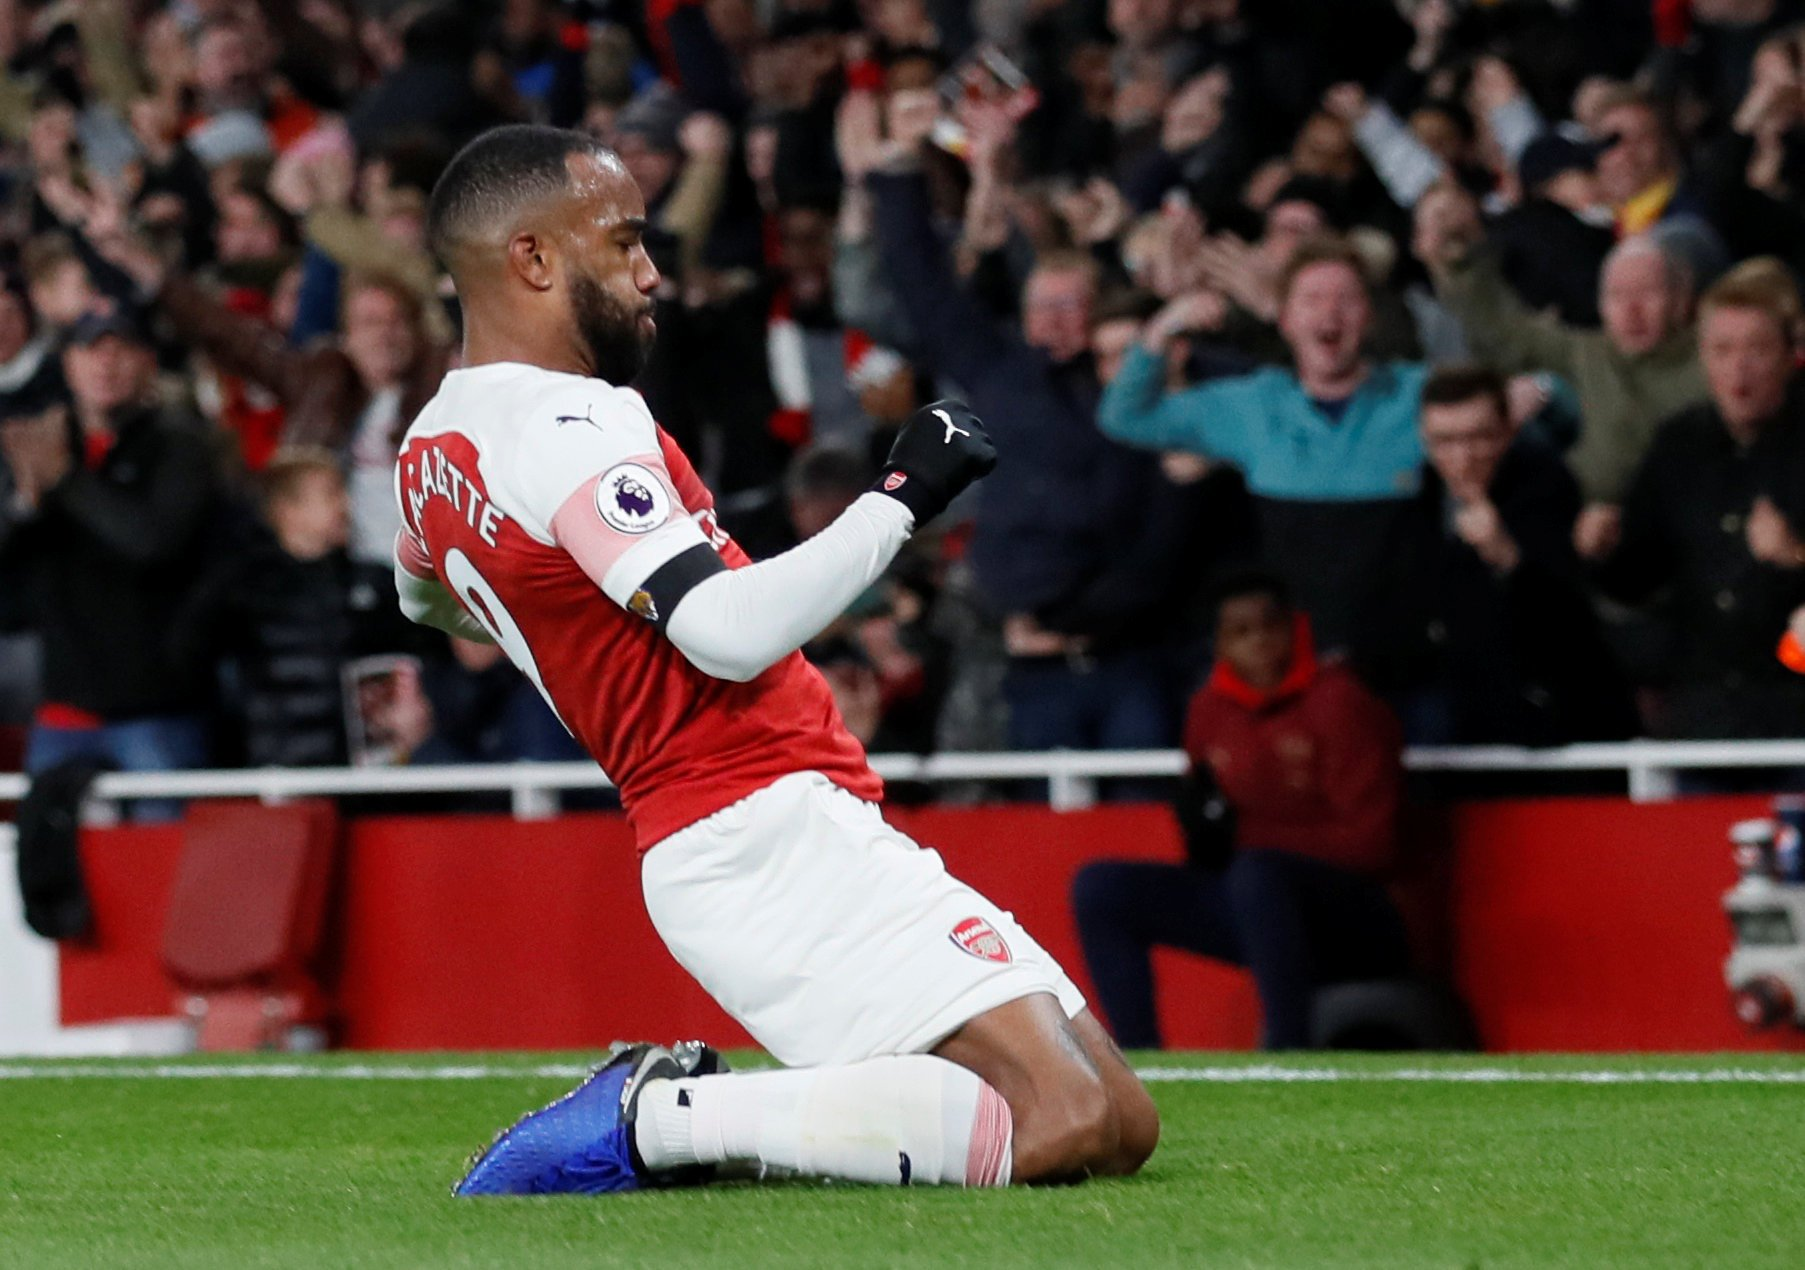 Arsenal show real fight and signs of progress to halt Liverpool's title charge